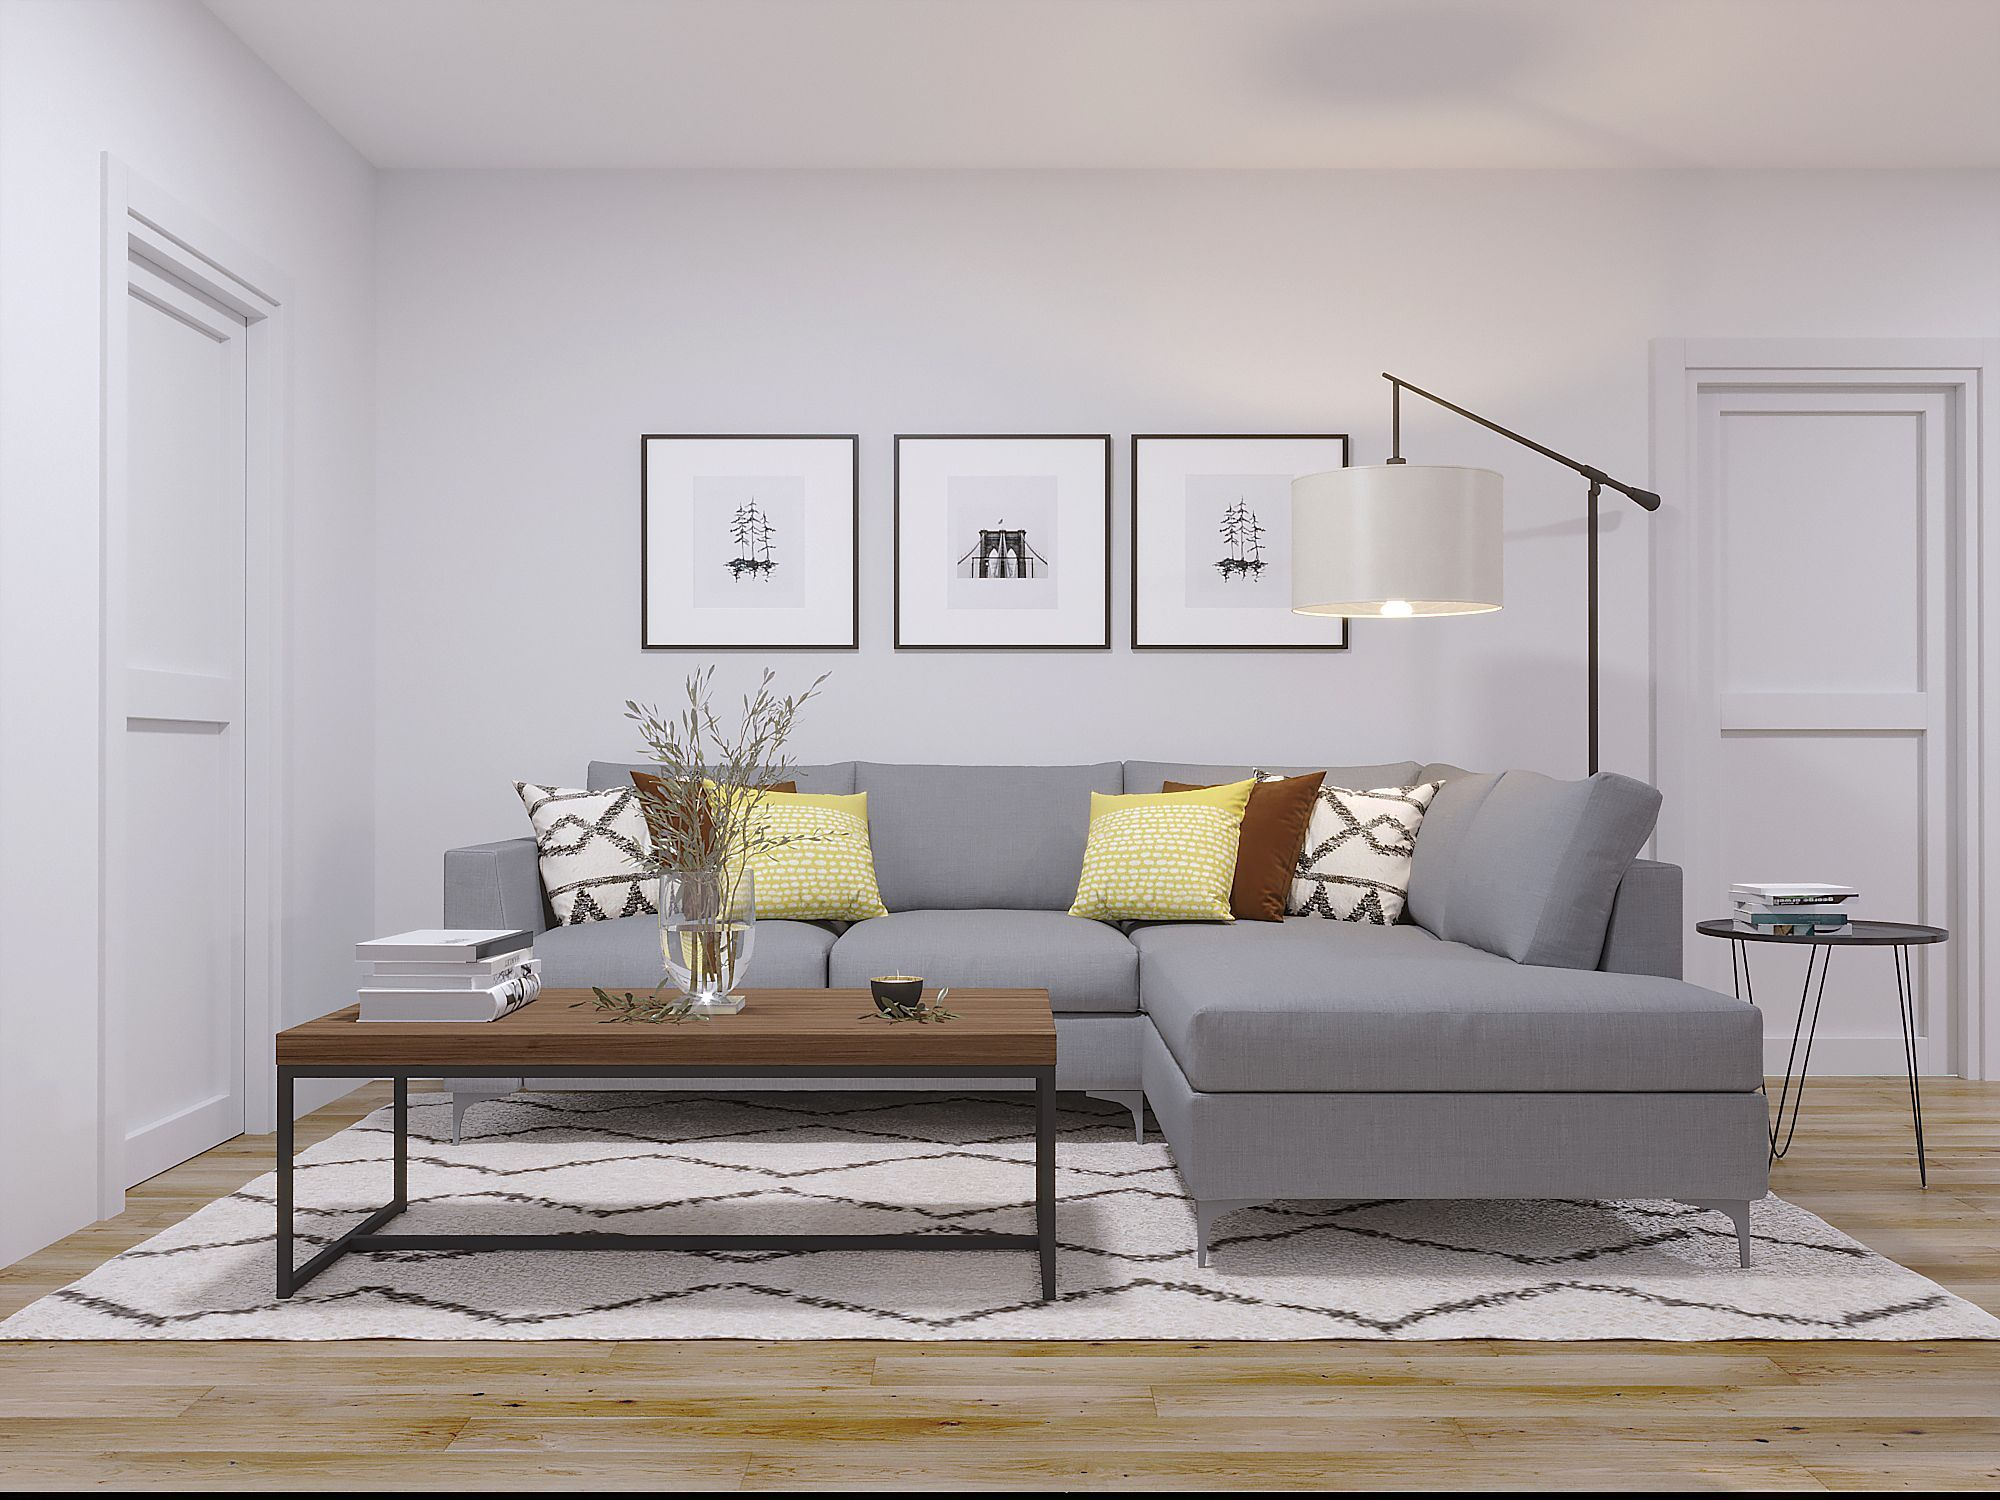 Midcentury Modern, Minimal Living Room Design by Havenly Interior Designer Lindsay #havenlylivingroom Midcentury Modern, Minimal Living Room by Havenly #havenlylivingroom